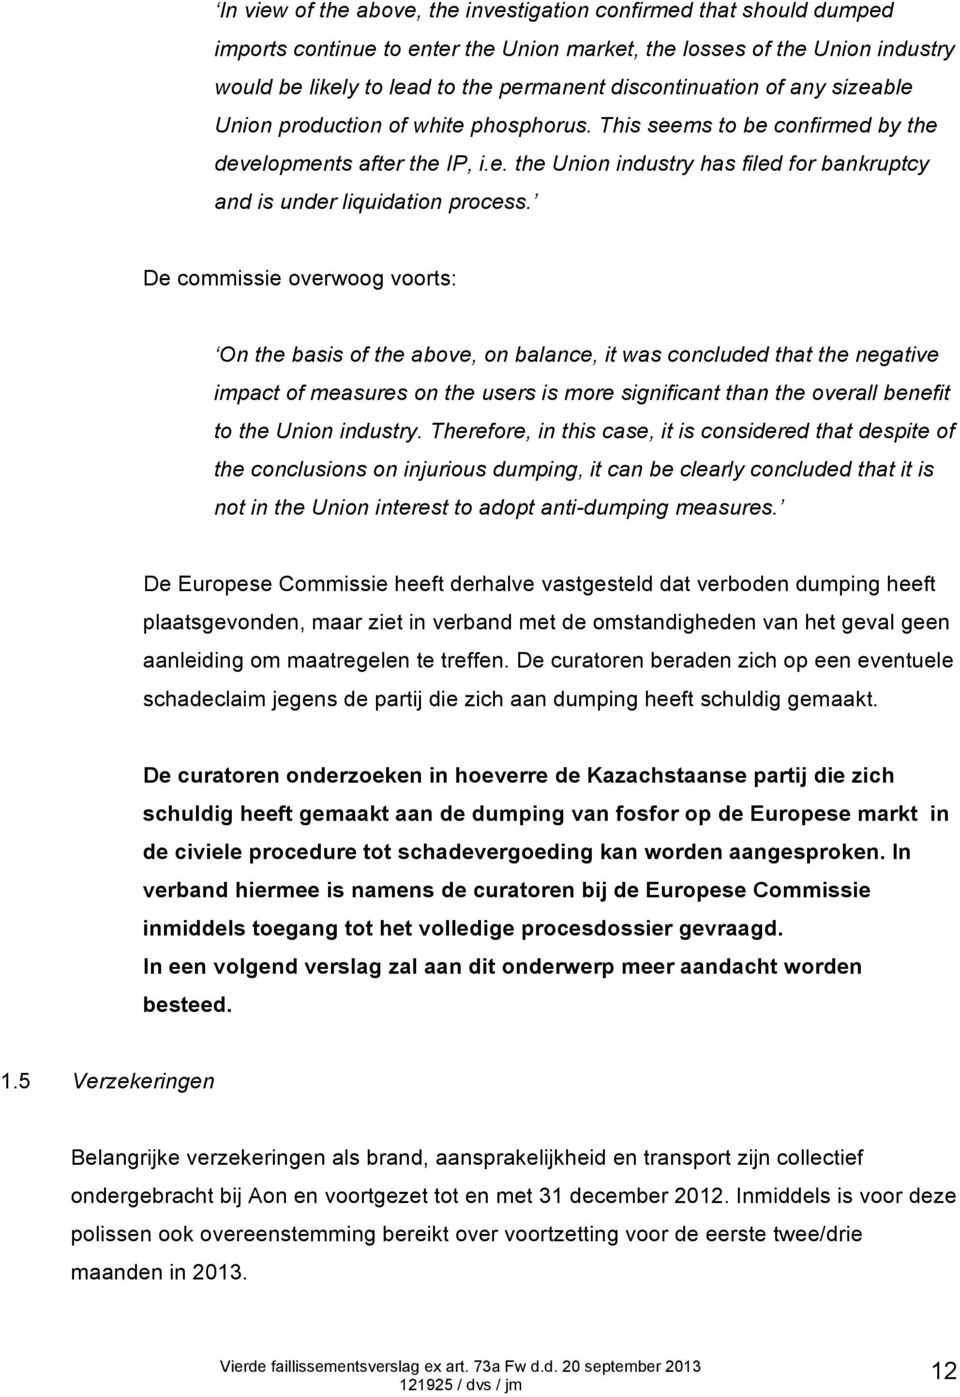 De commissie overwoog voorts: On the basis of the above, on balance, it was concluded that the negative impact of measures on the users is more significant than the overall benefit to the Union